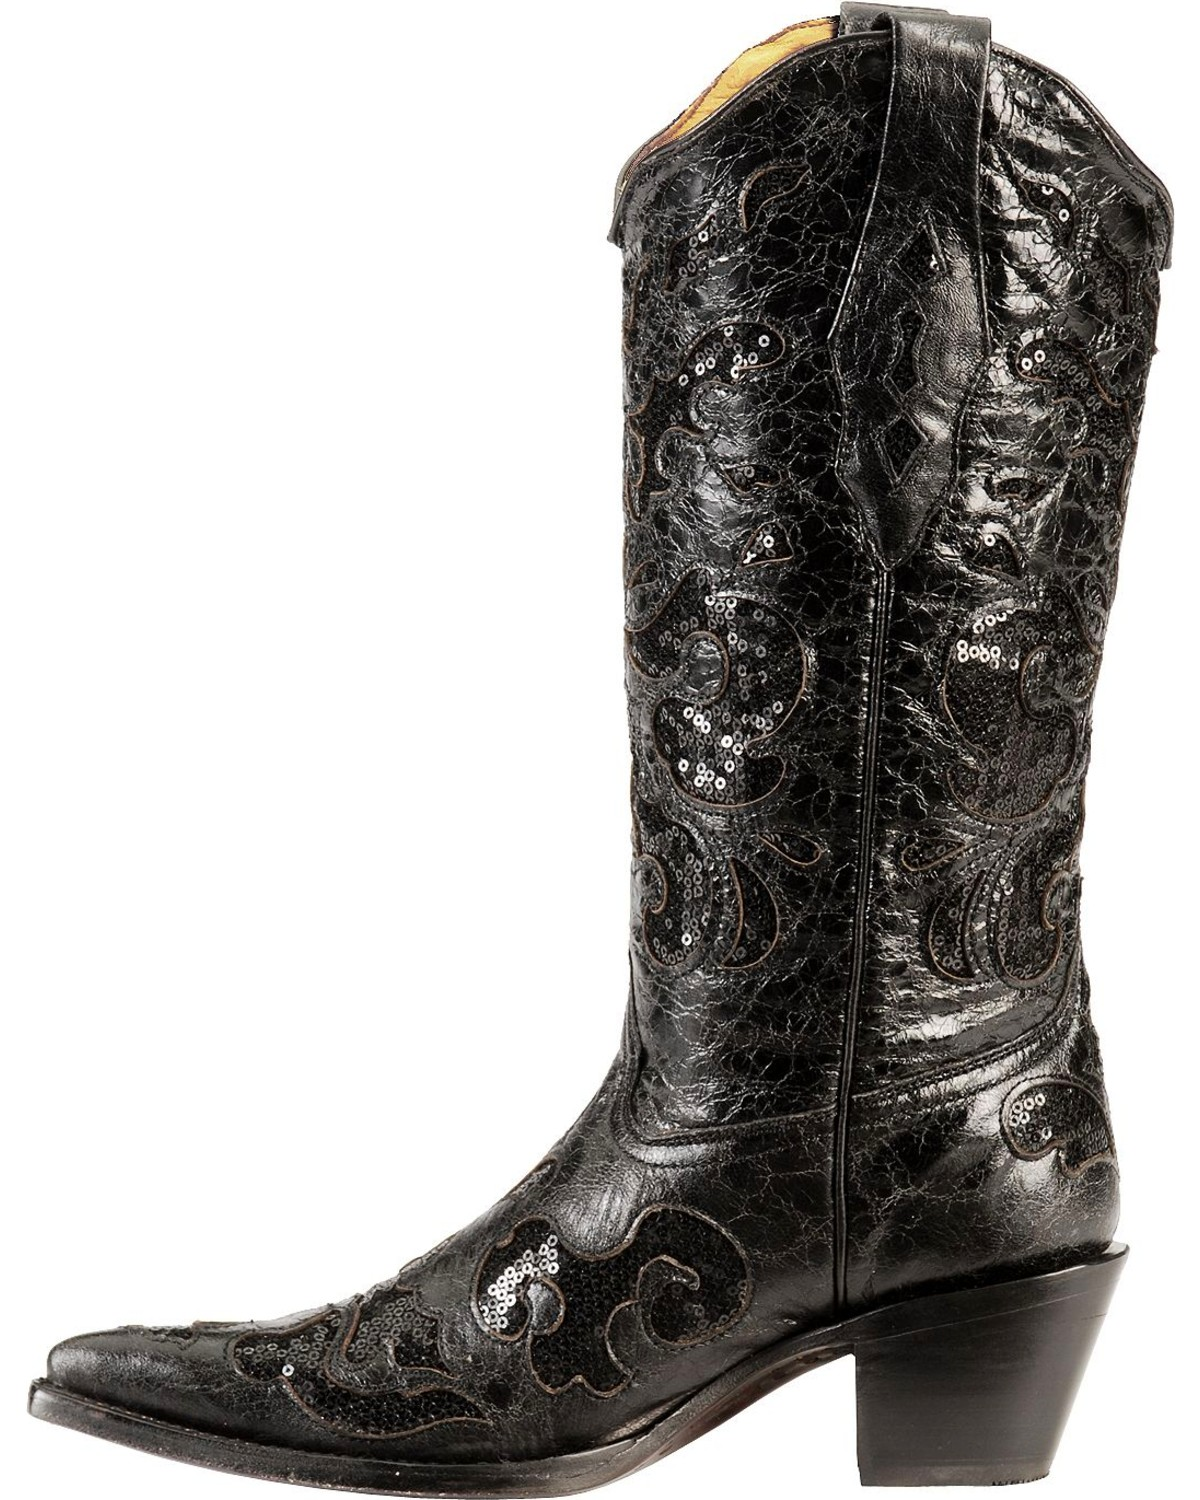 corral black single women Get the corral women's black laser etched snip toe cowboy boots from south texas tack this pair of corrals are layered in smooth black leather with  single stitch .